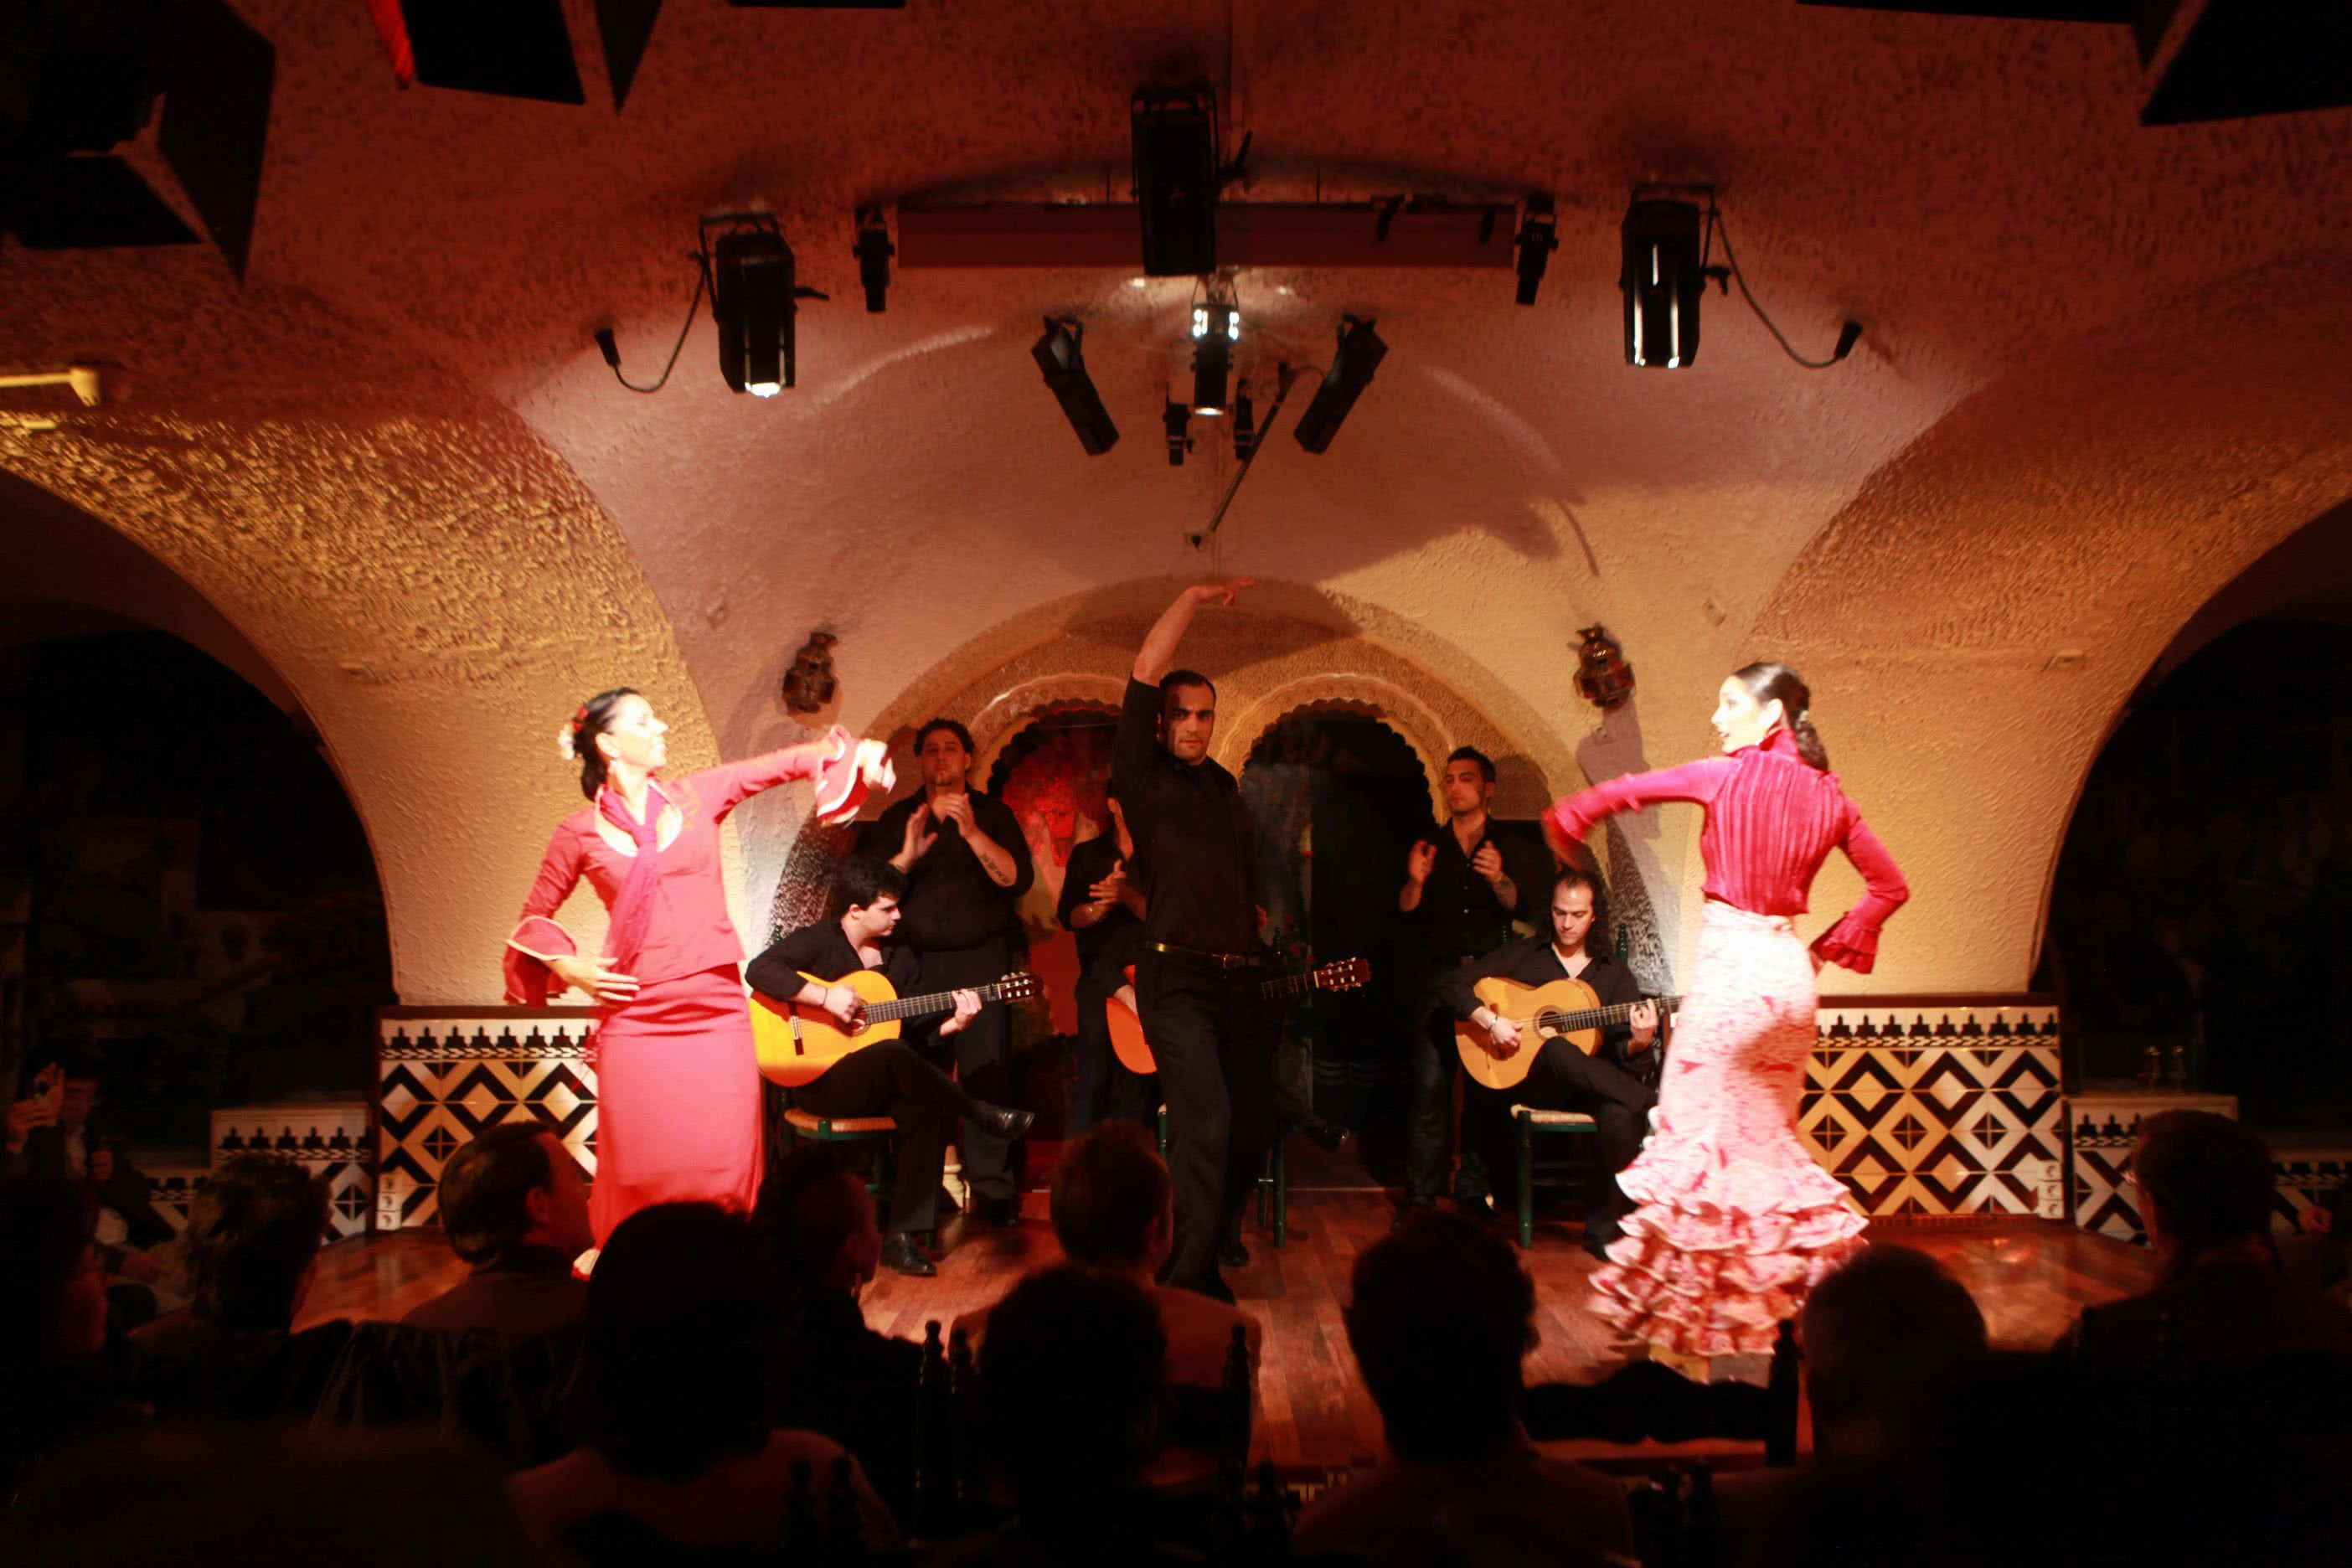 New year's eve in TABLAO FLAMENCO CORDOBES - Living Tours